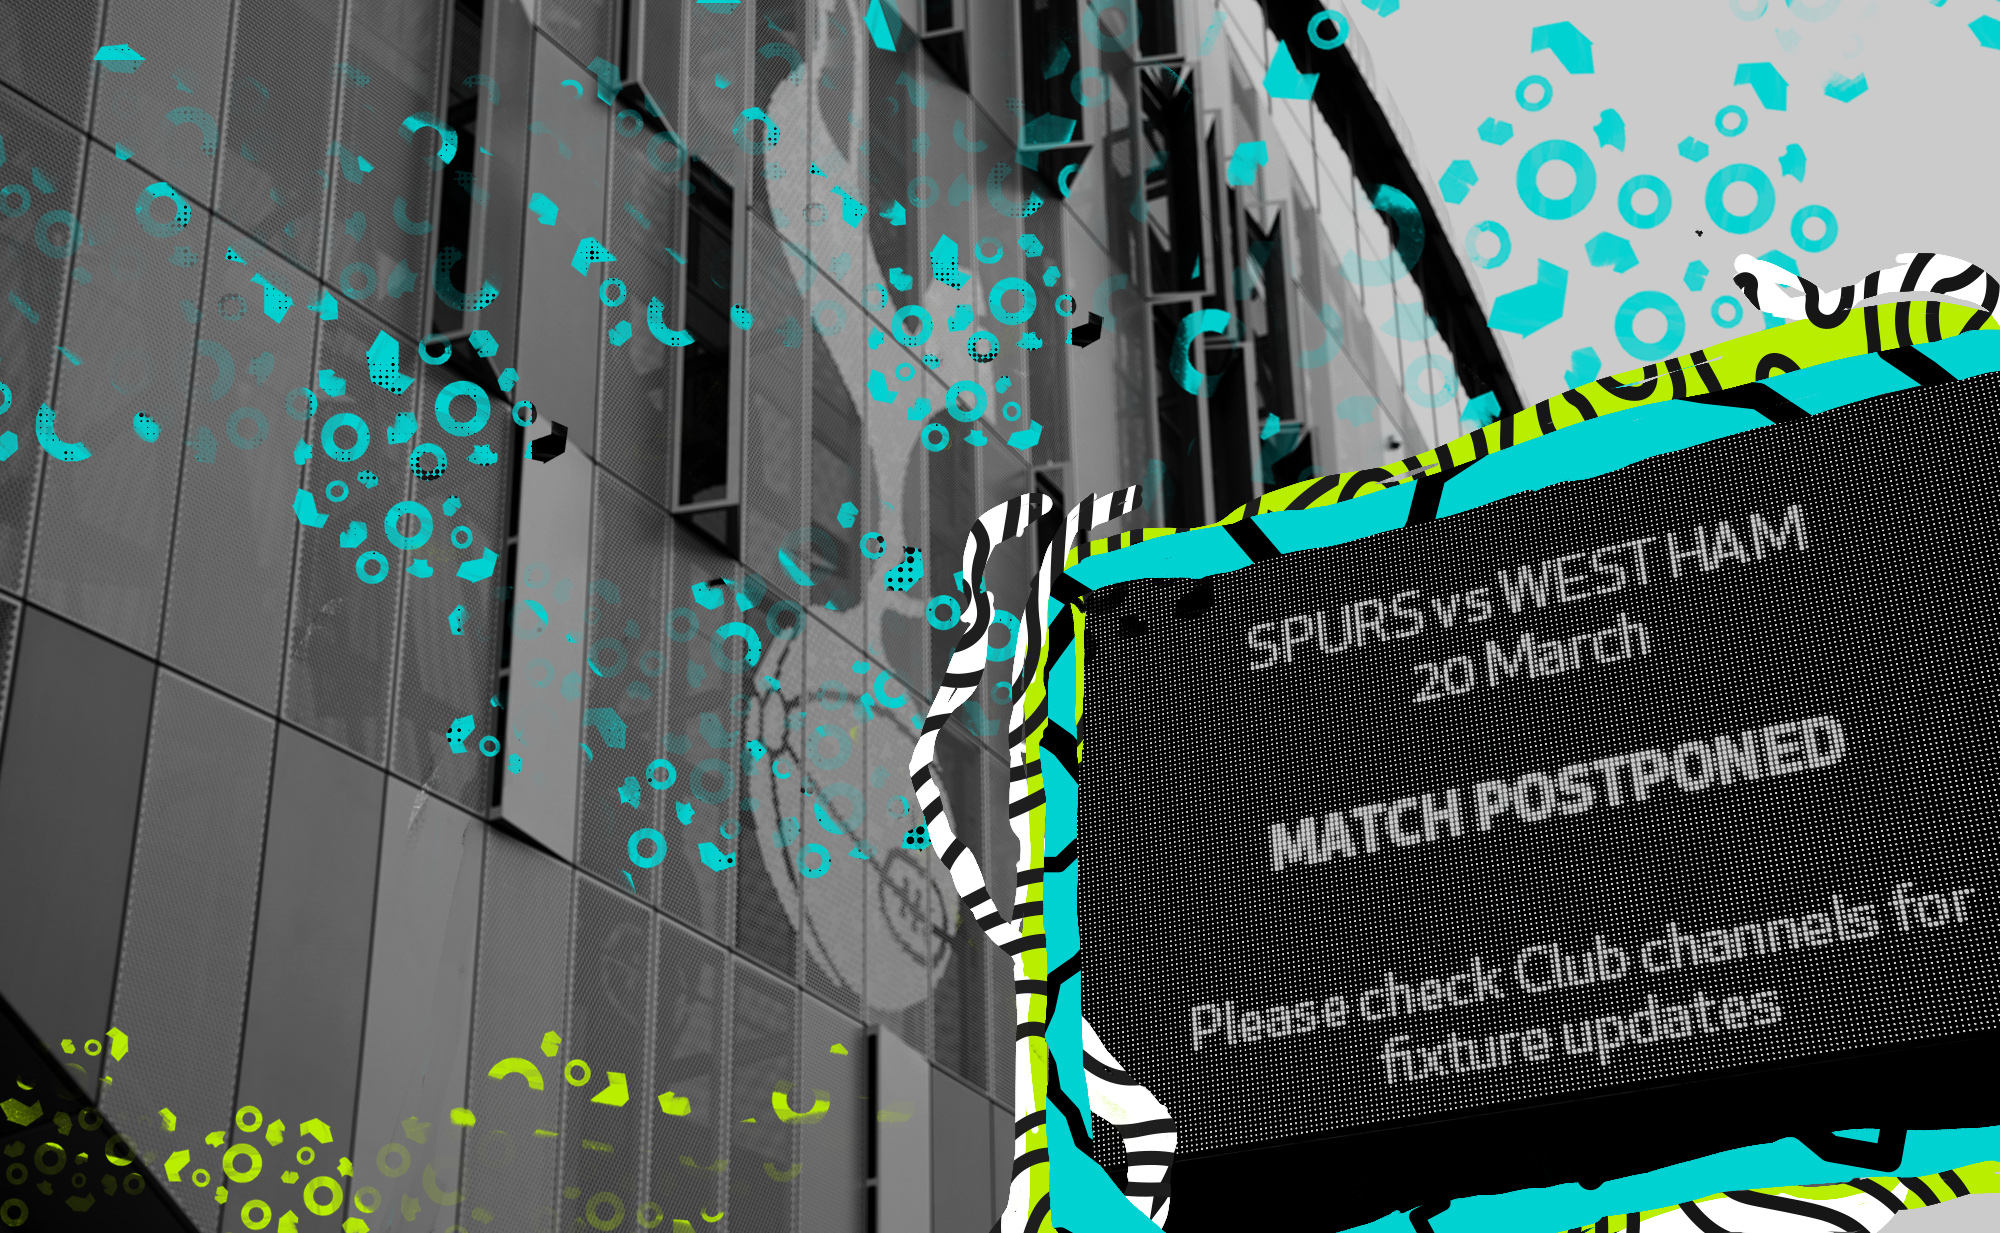 Photo of Tottenham Hotspur Stadium with an electronic sign outside reading that the March 20 match between Spurs and West Ham has been postponed.